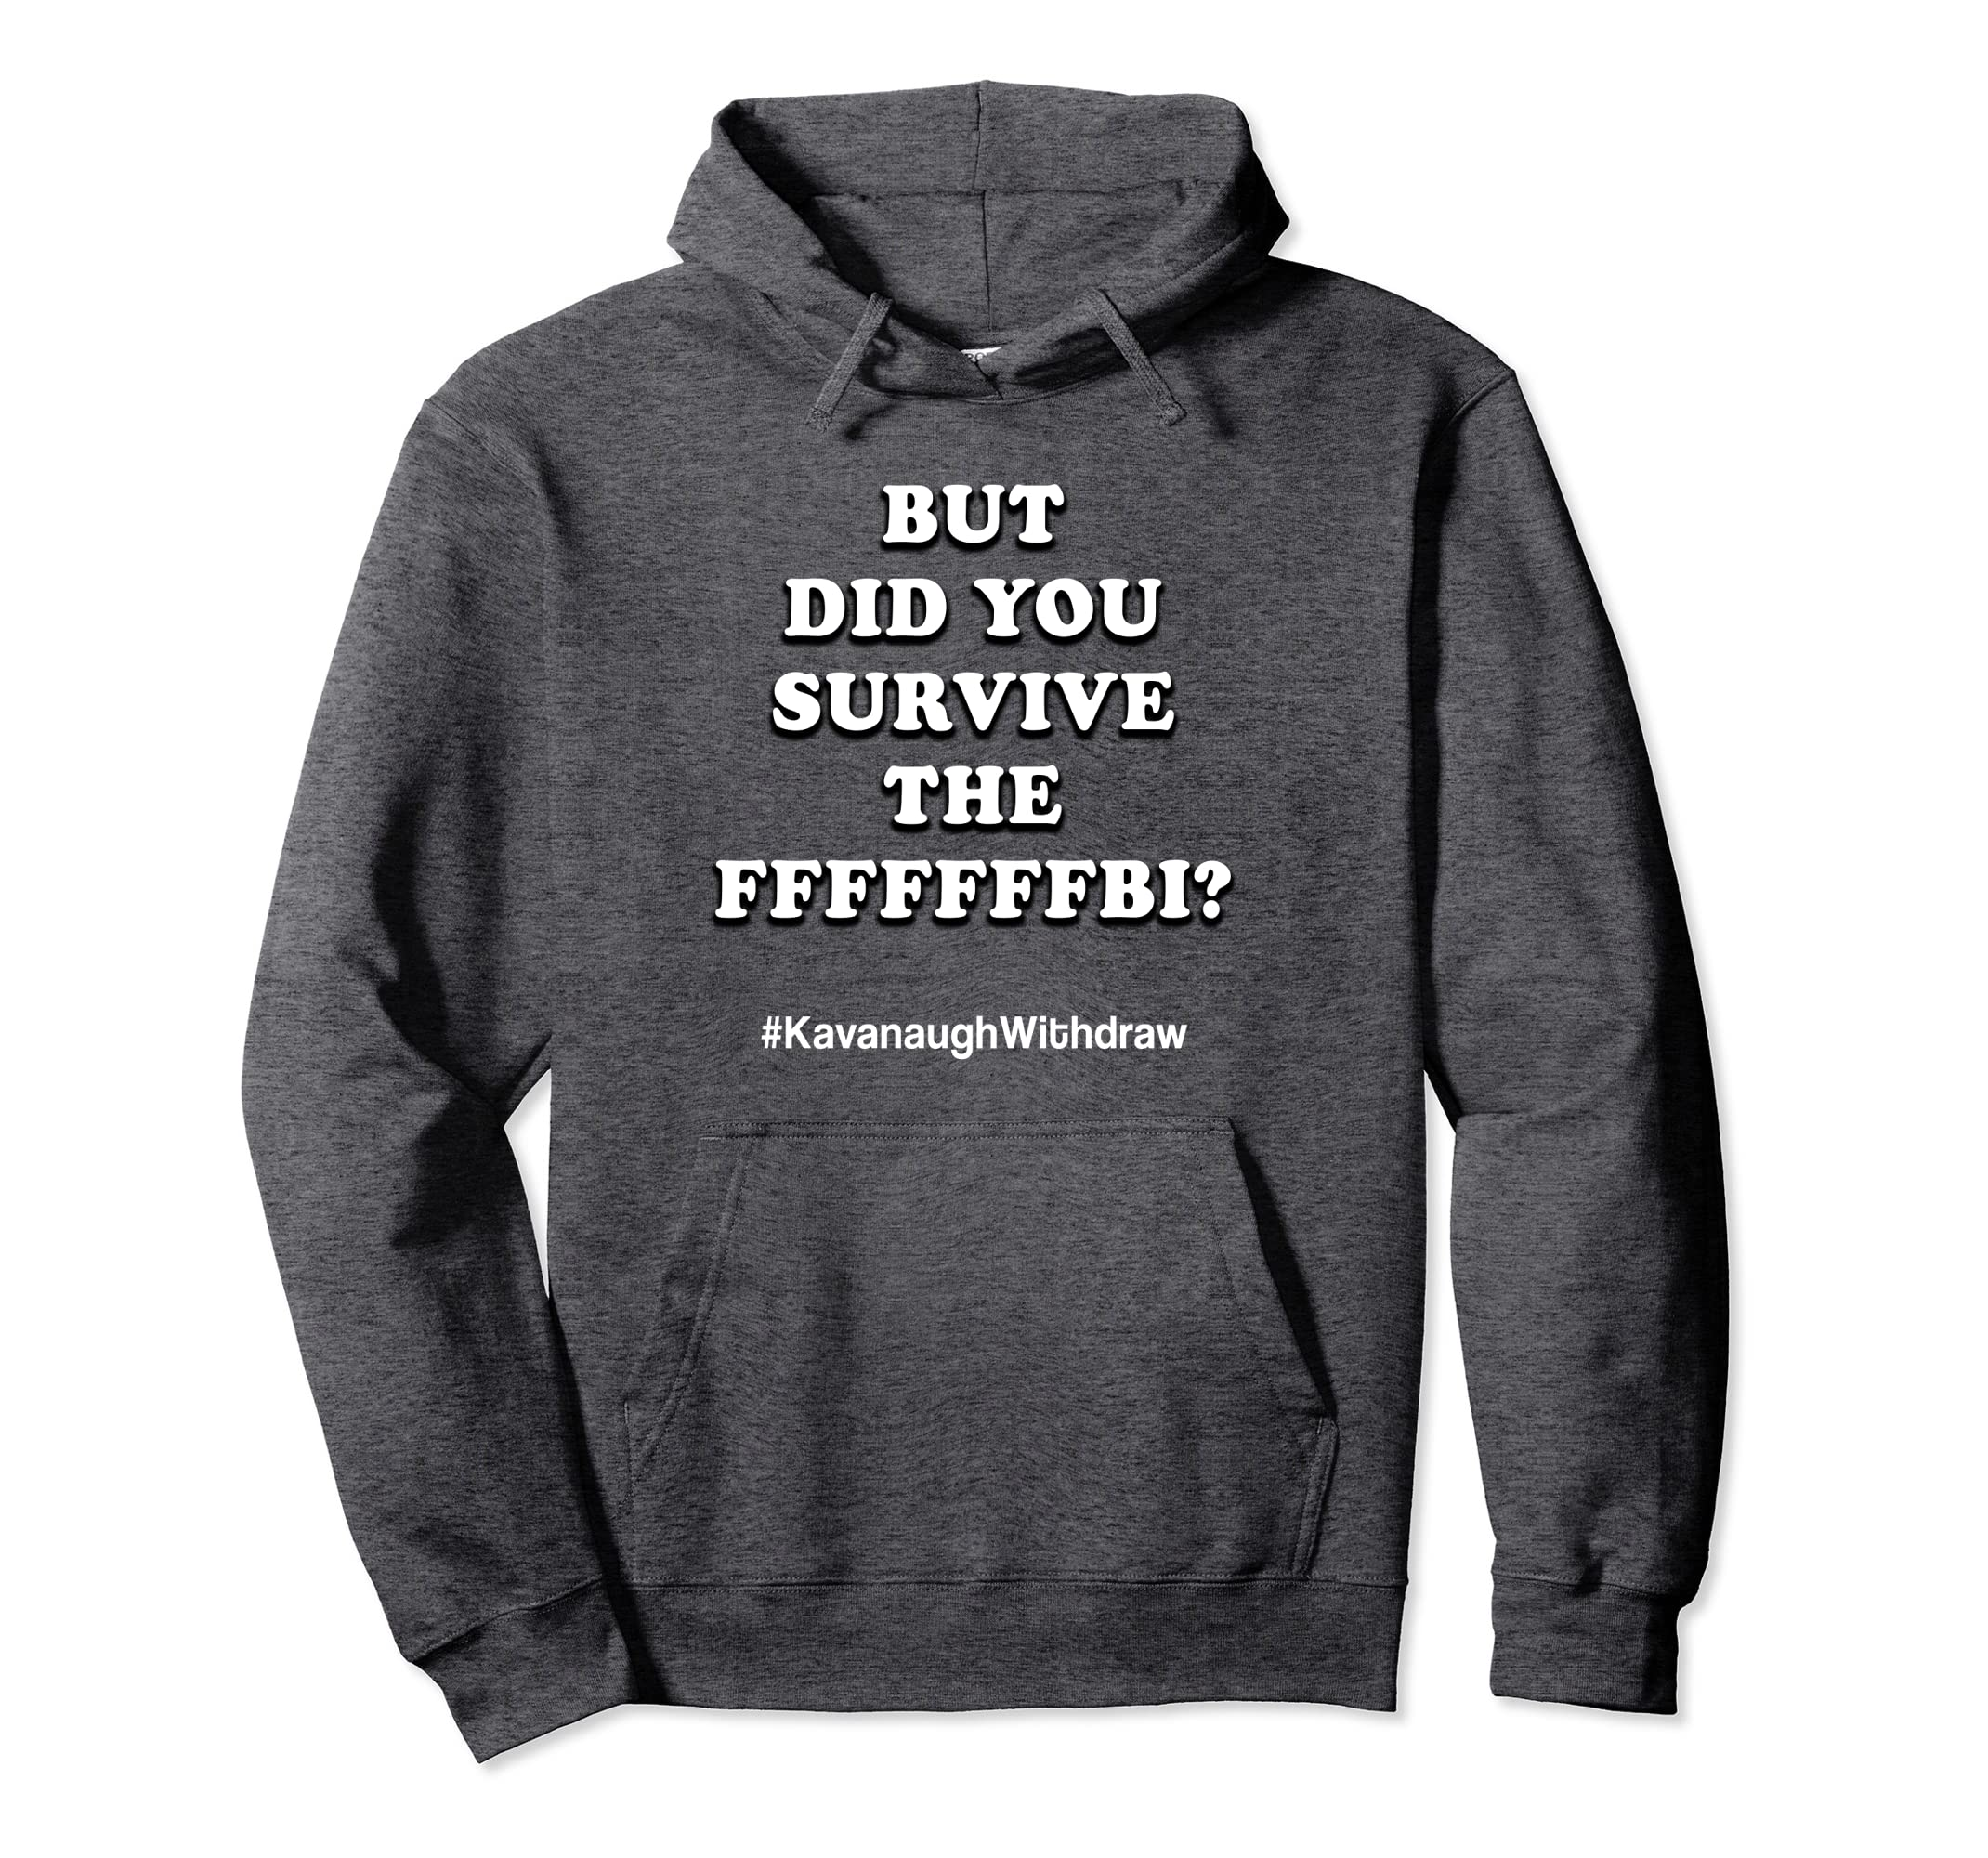 But Did You Survive the FFFFFFFBI? Funny Kavanaugh Hoodie-SFL